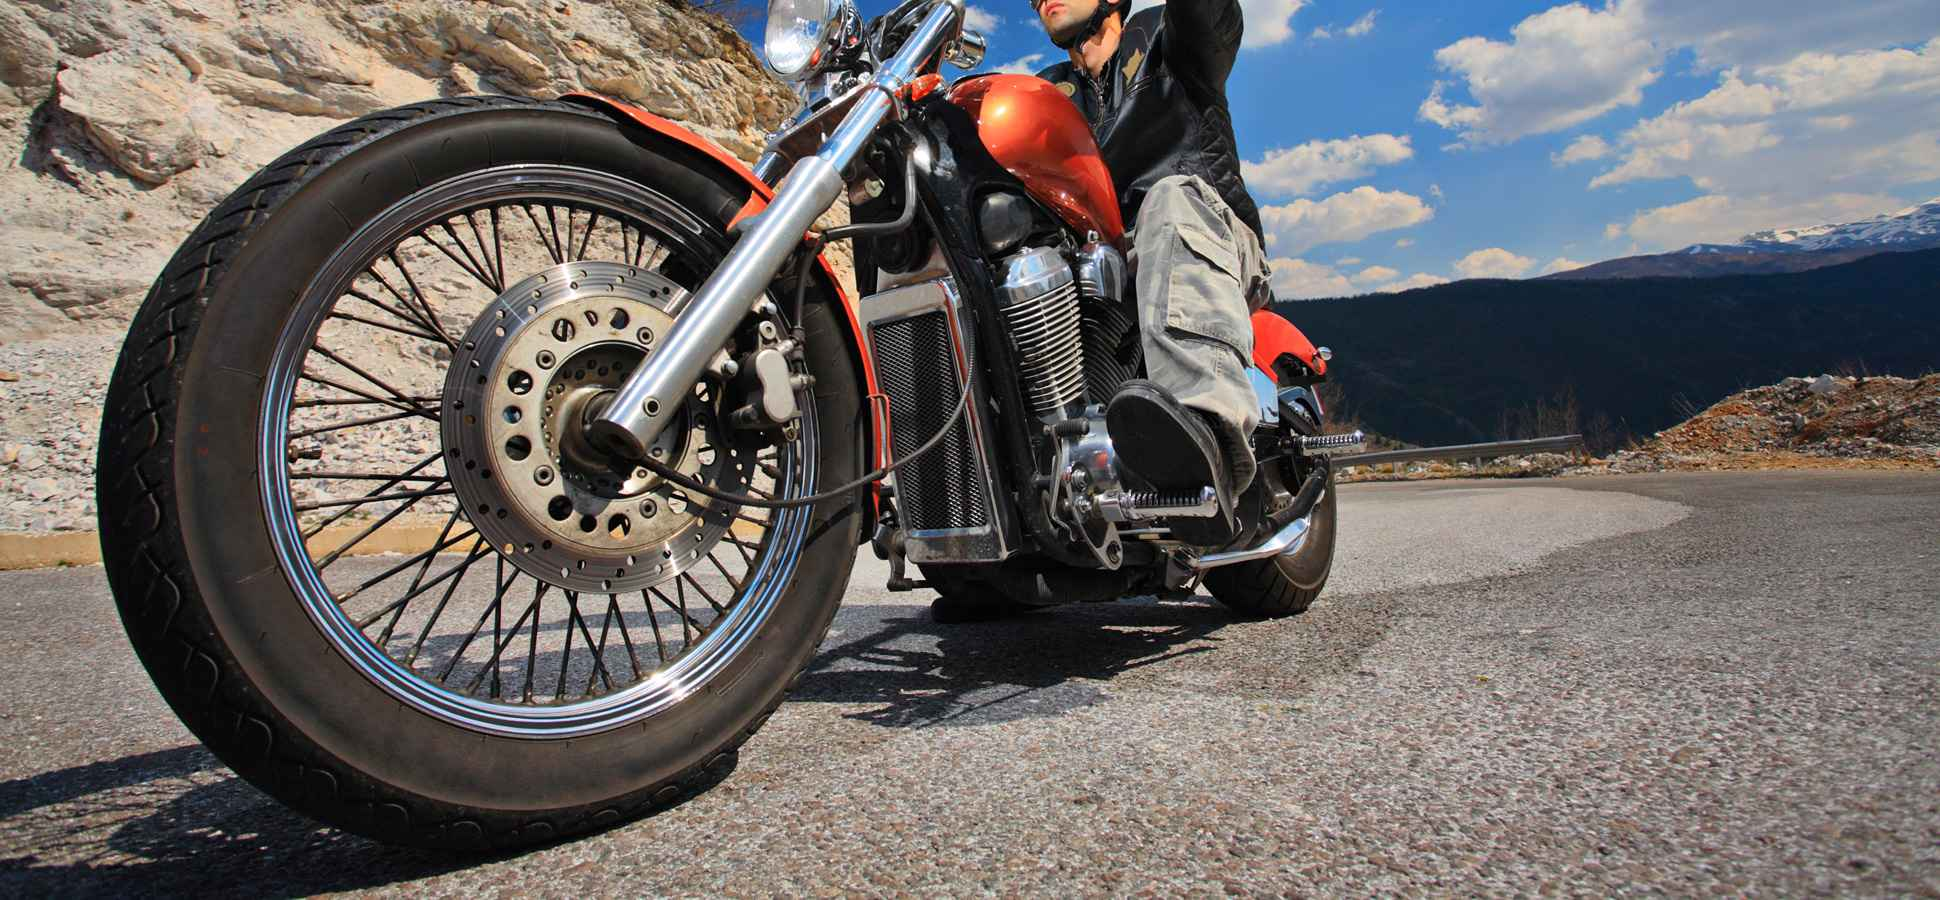 5 Reasons You Should Own a Motorcycle